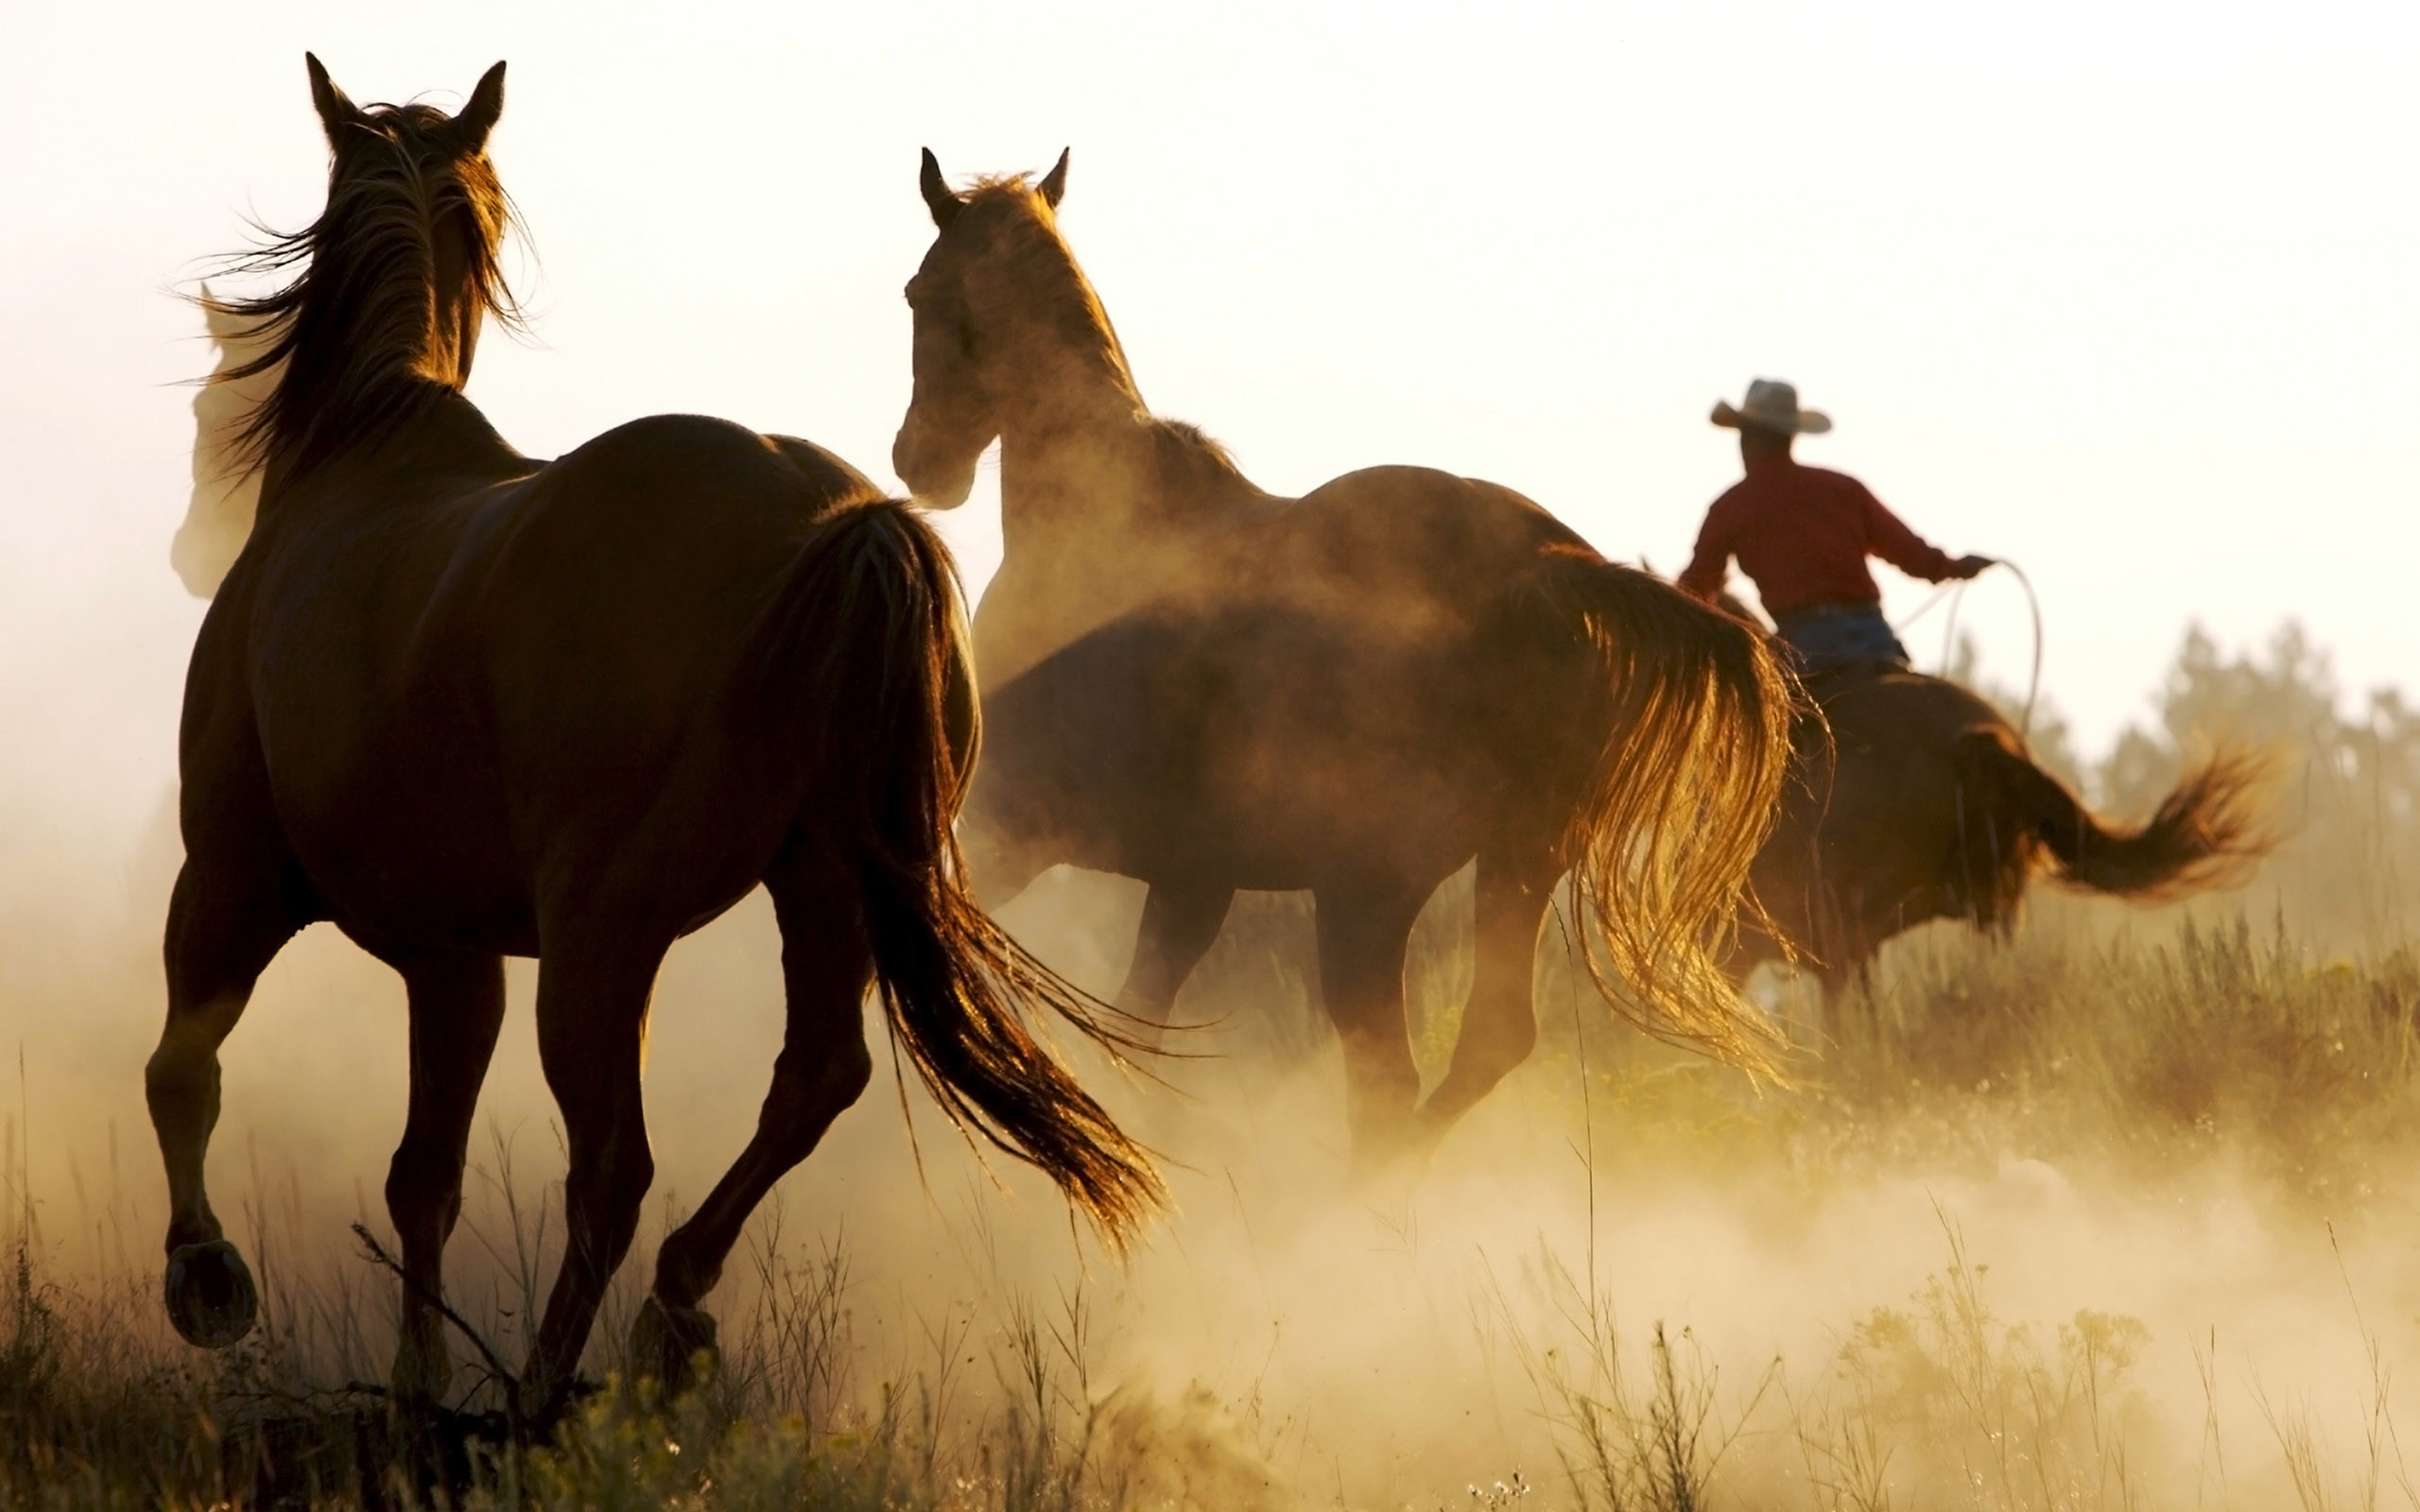 2560x1600 cowboys horses wild nature widescreen background picture animal zoo HD  Wallpapers for desktop computer, high definition wallpapers for Dual  monitors and ...